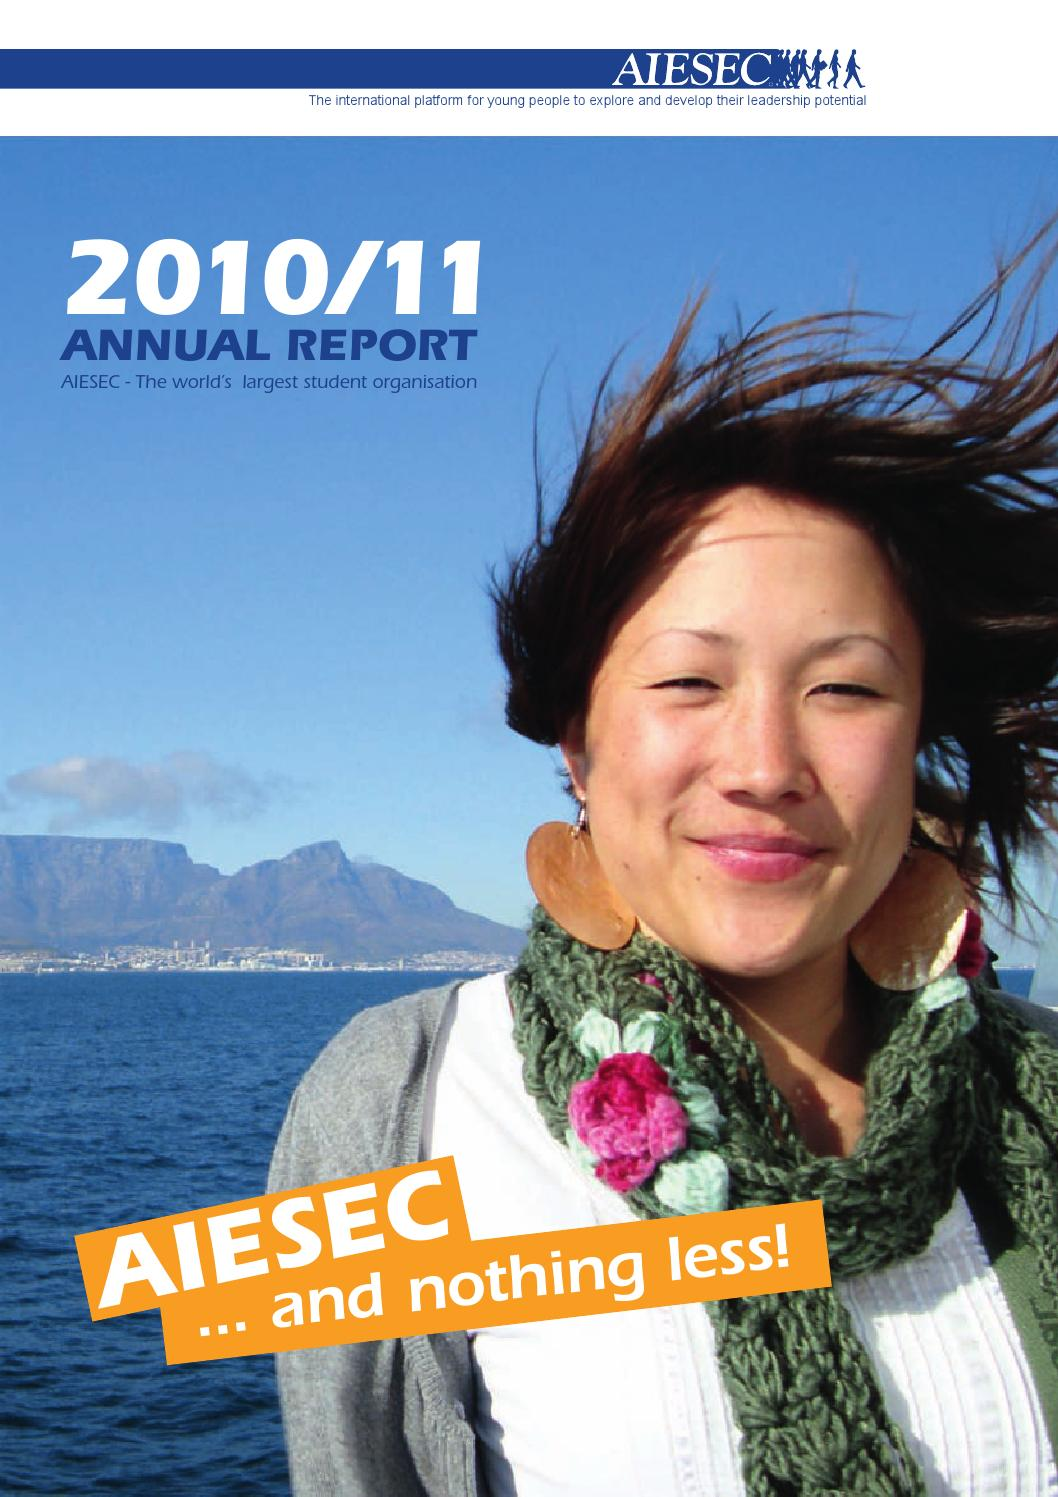 Aiesec Münster aiesec germany - annual report 2010.11lisa eschbaumer